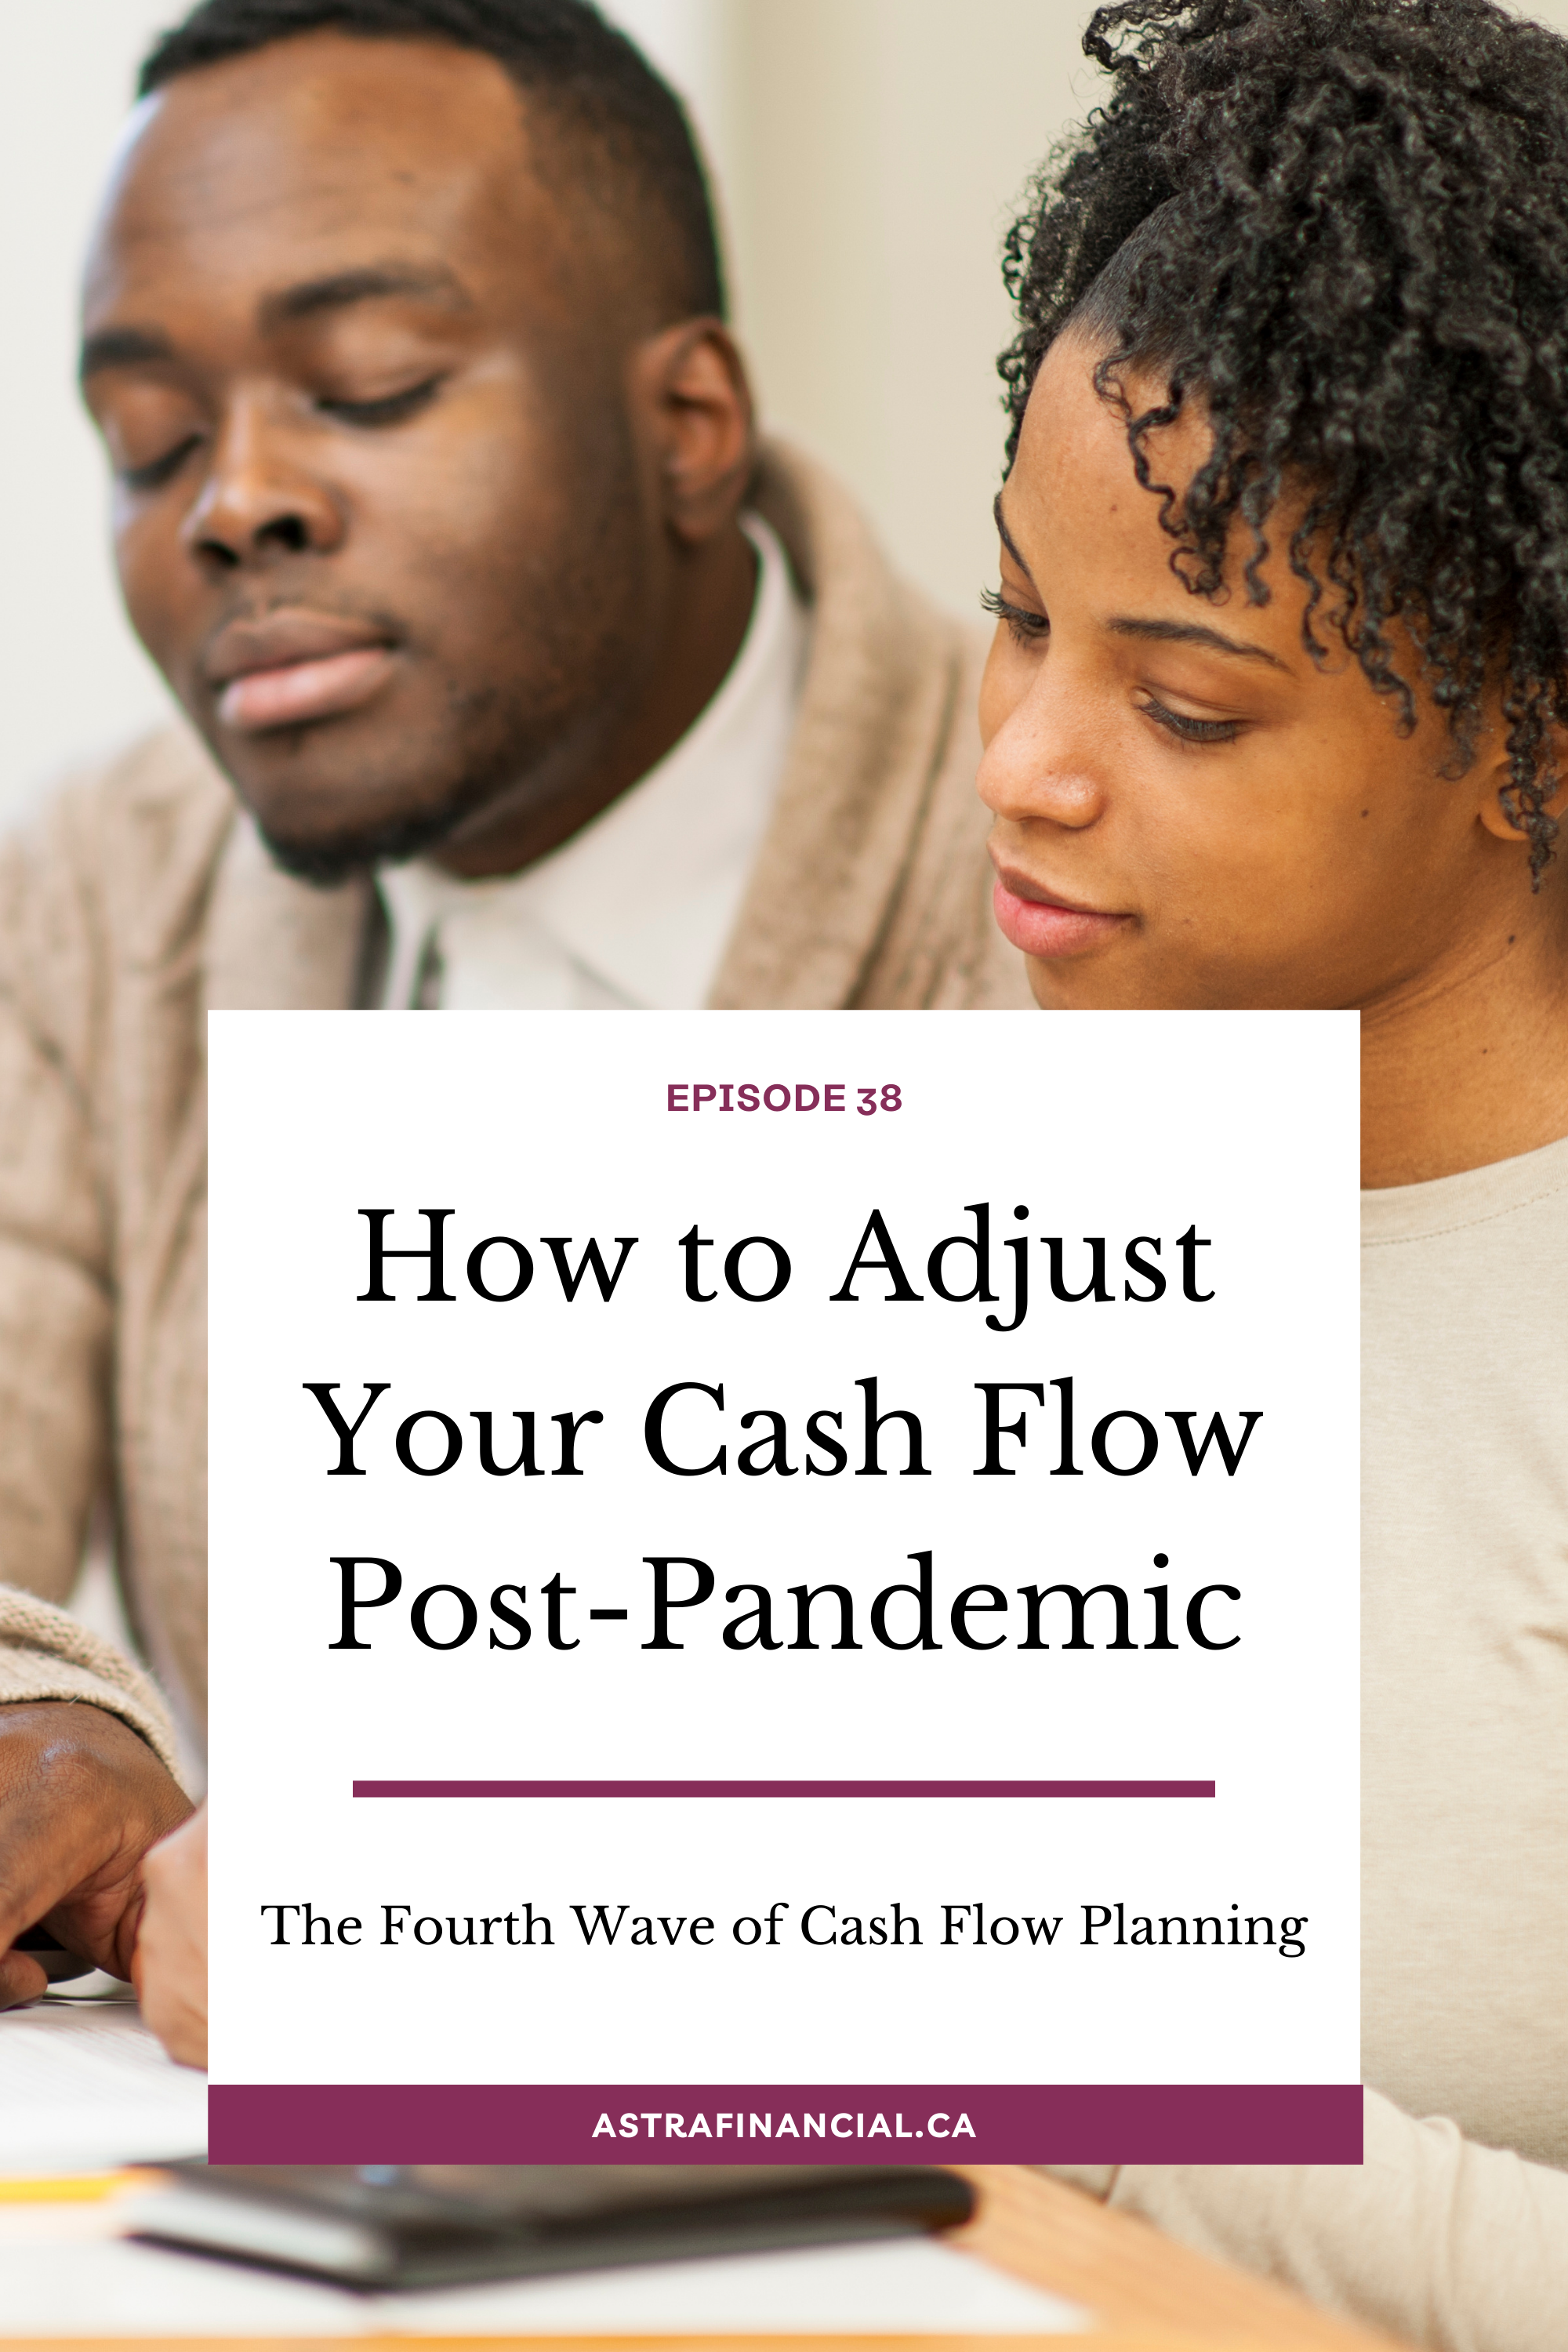 Episode 38 - How to Adjust Your Cash Flow Post-Pandemic by Astra Financial